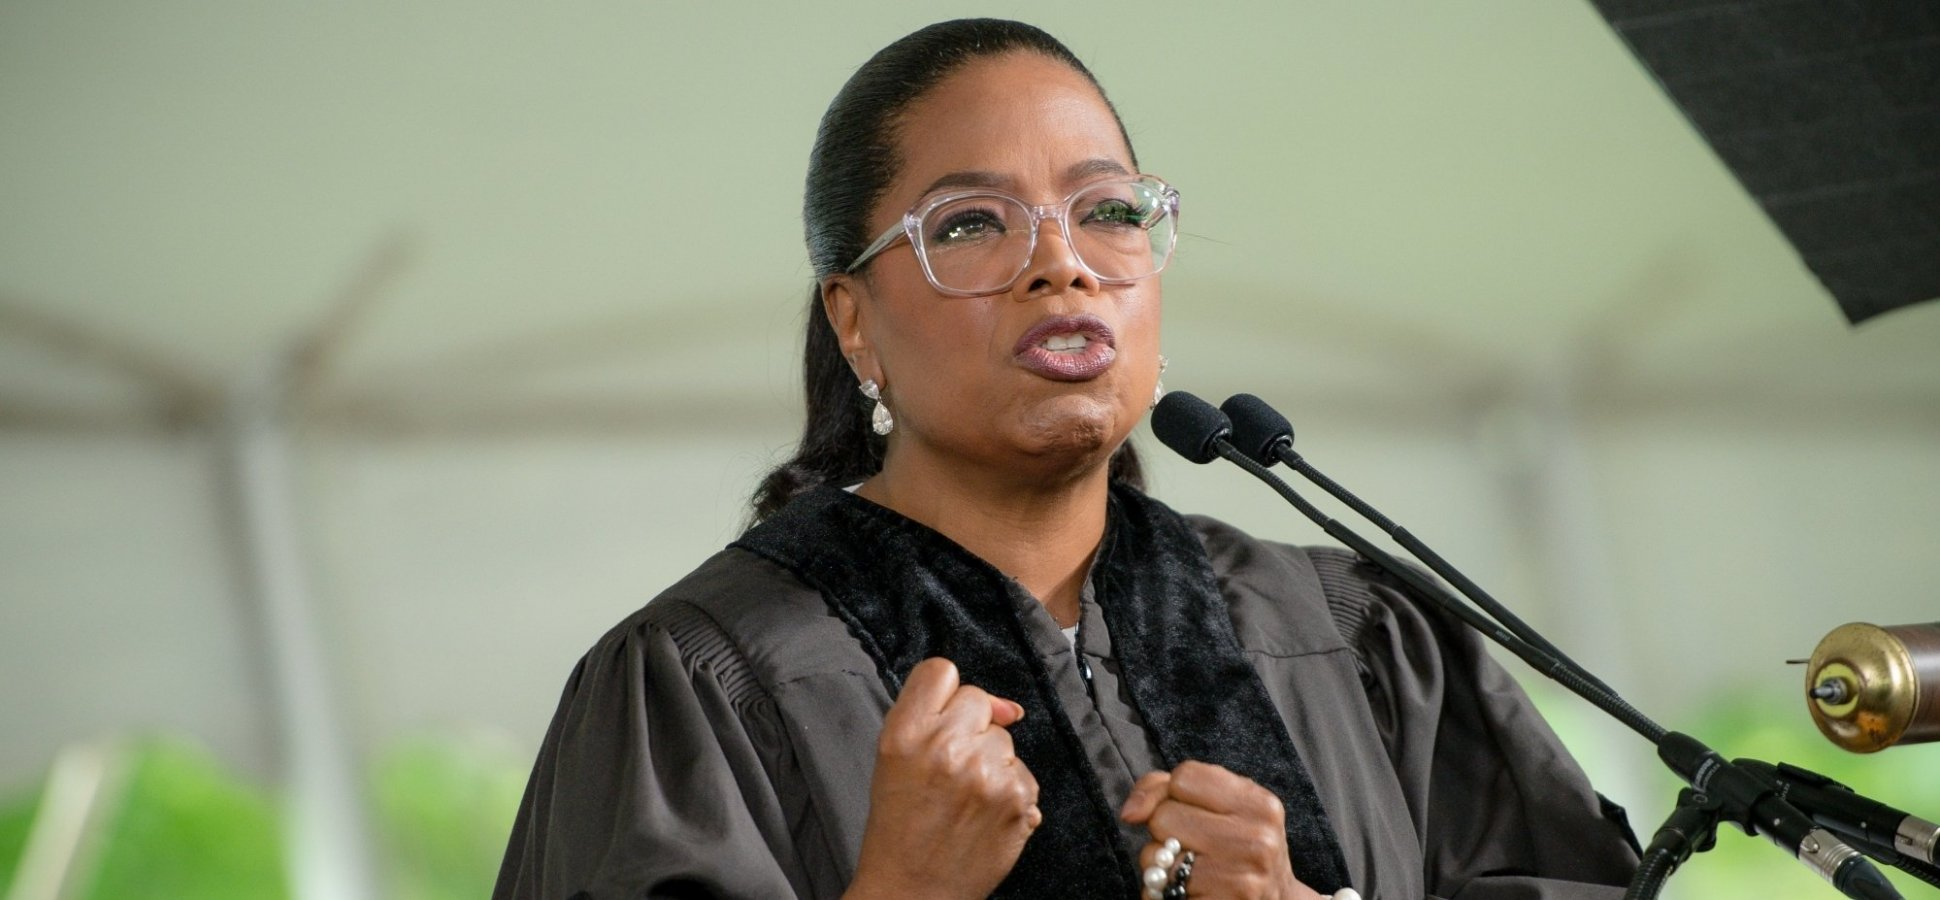 From Steve Jobs to Oprah: 28 Leaders' Commencement Speeches That Will Make You Re-Think Success